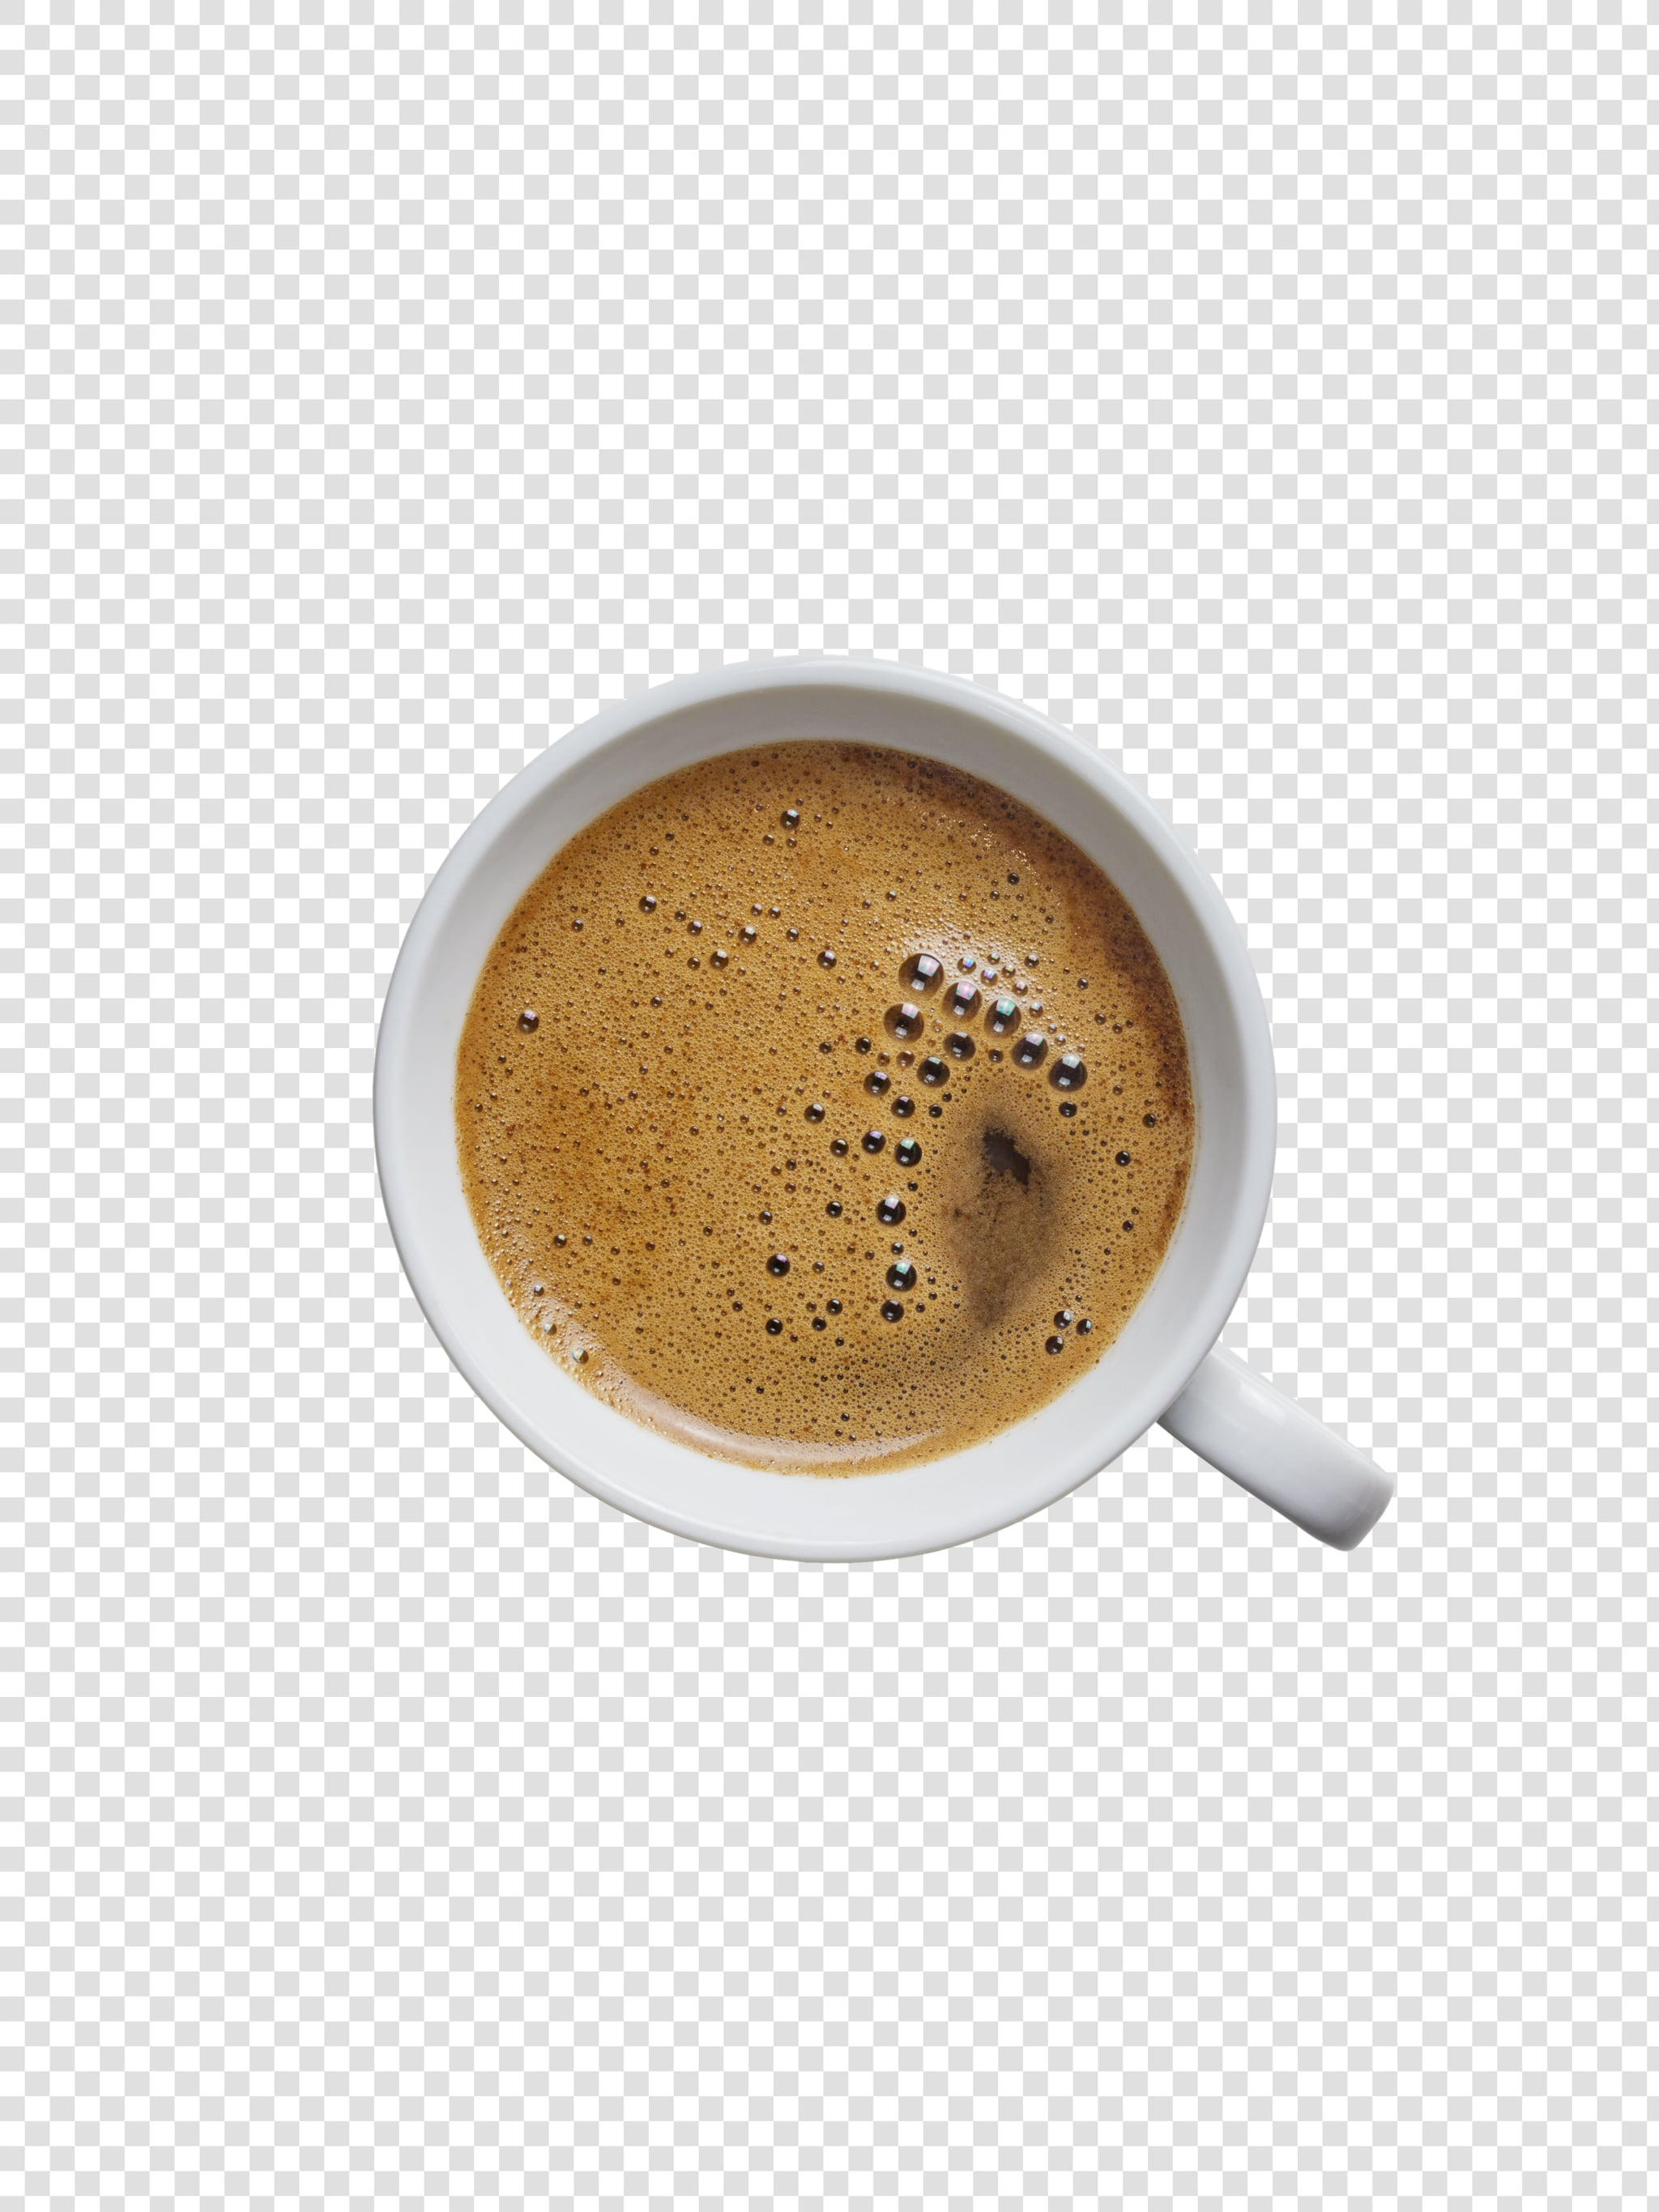 PSD Layered Coffee image